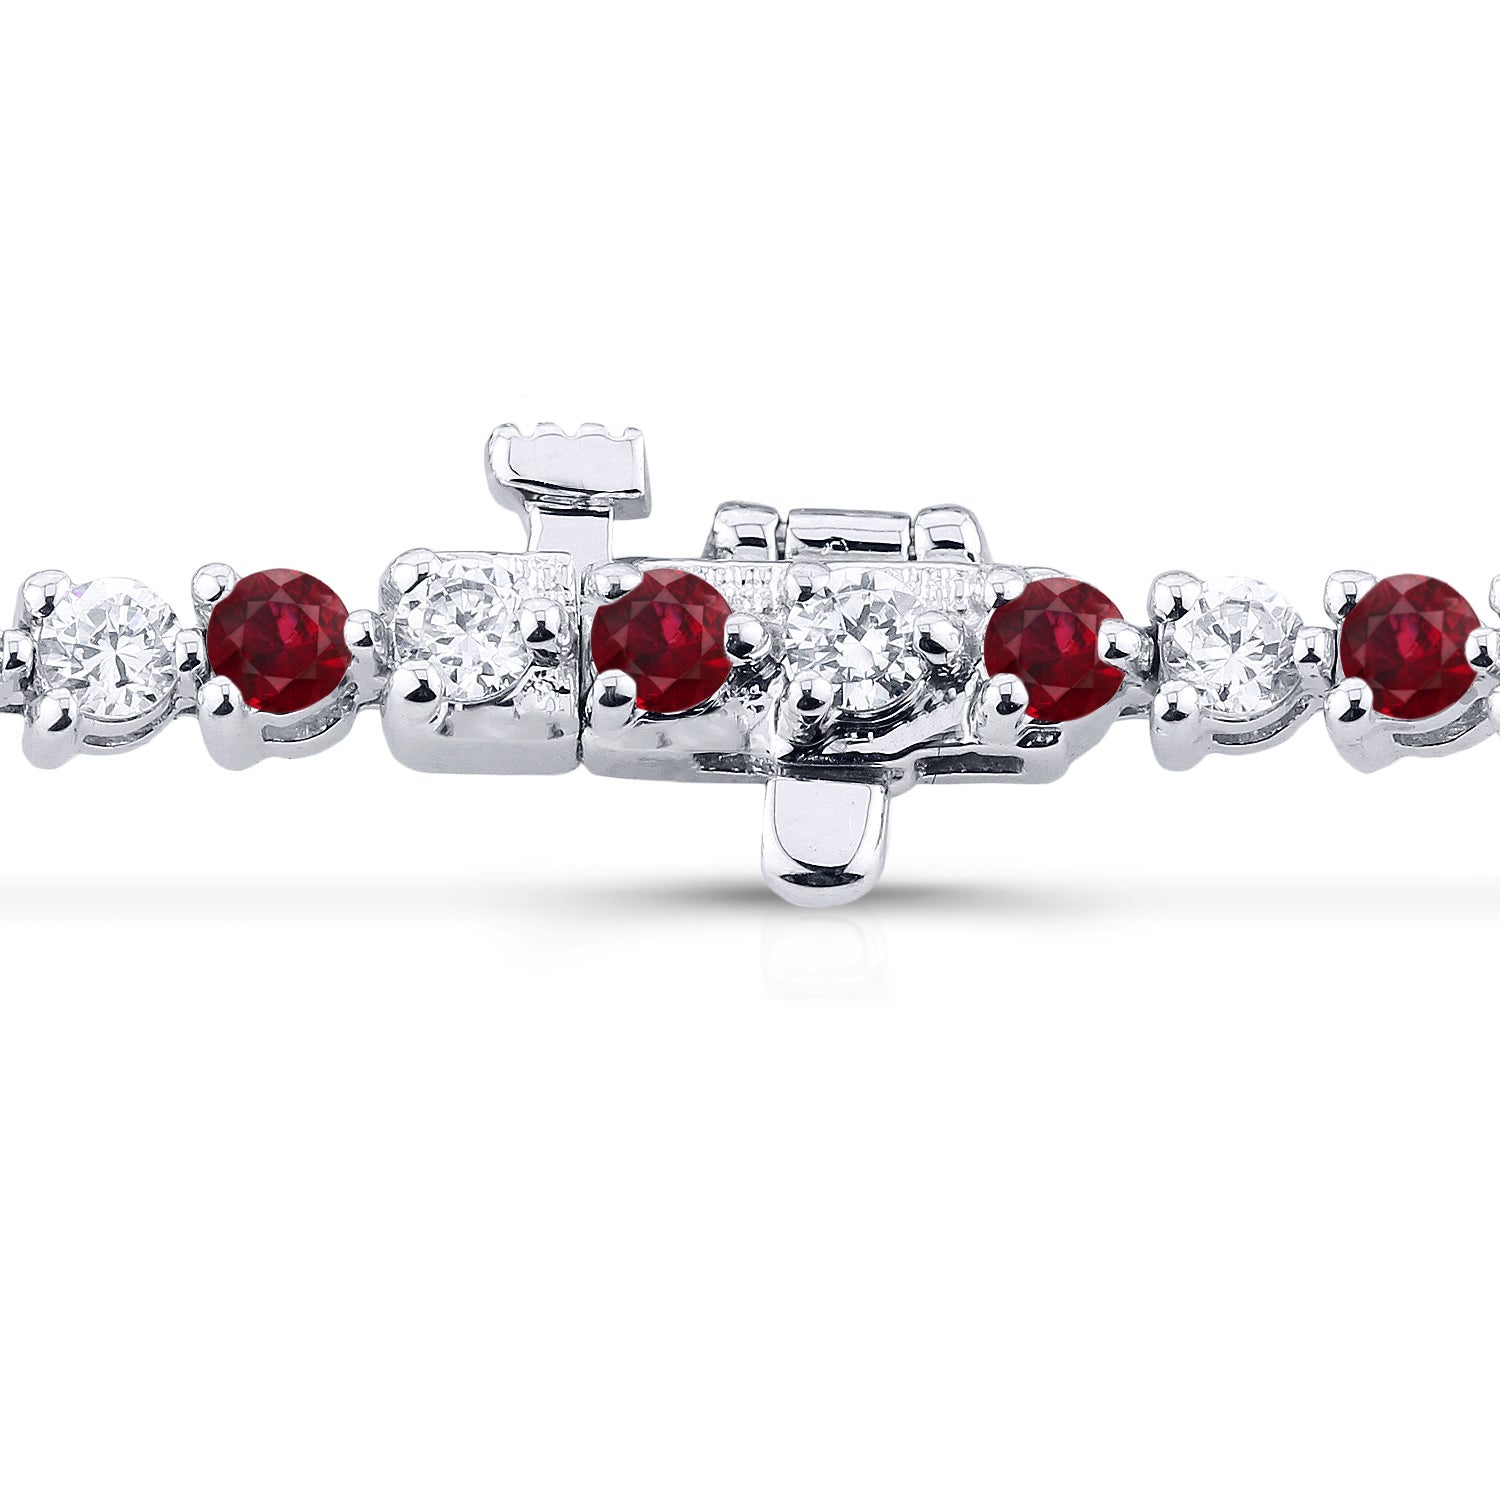 diamond bracelet p alarri r w ruby gold with diamonds htm tennis product solid rose rubies